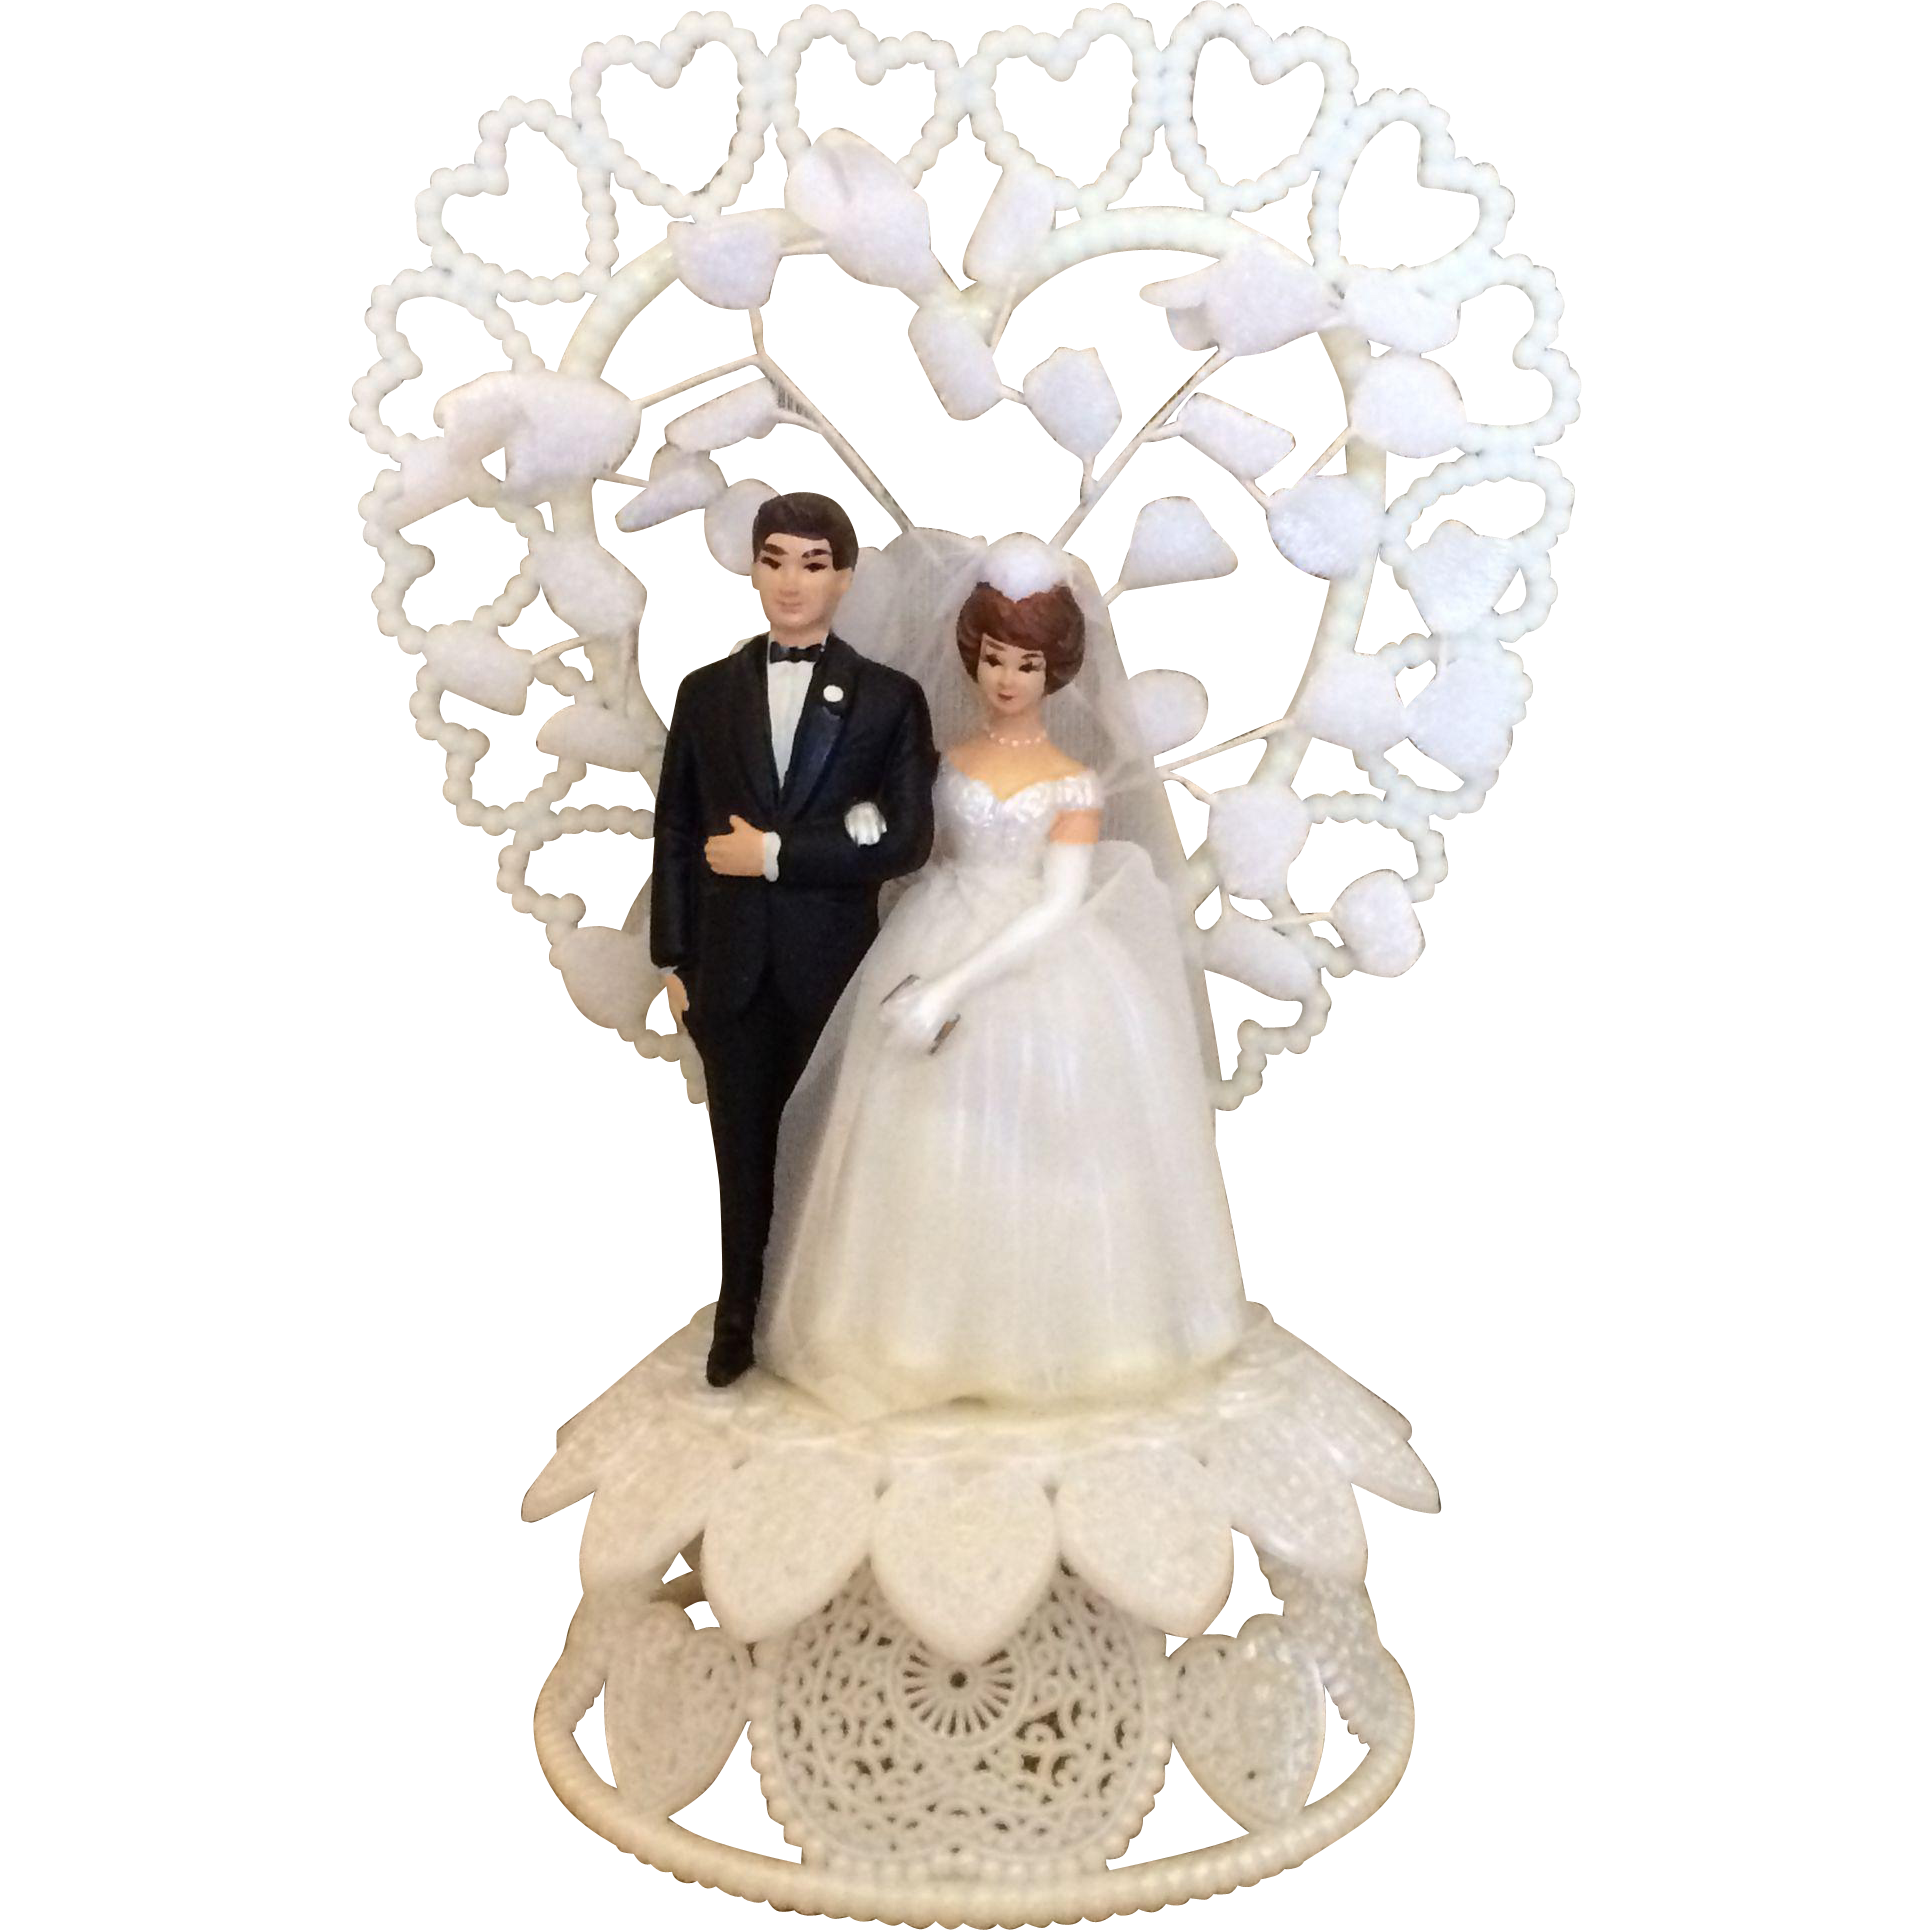 Wedding cake topper png. Vintage hand painted and